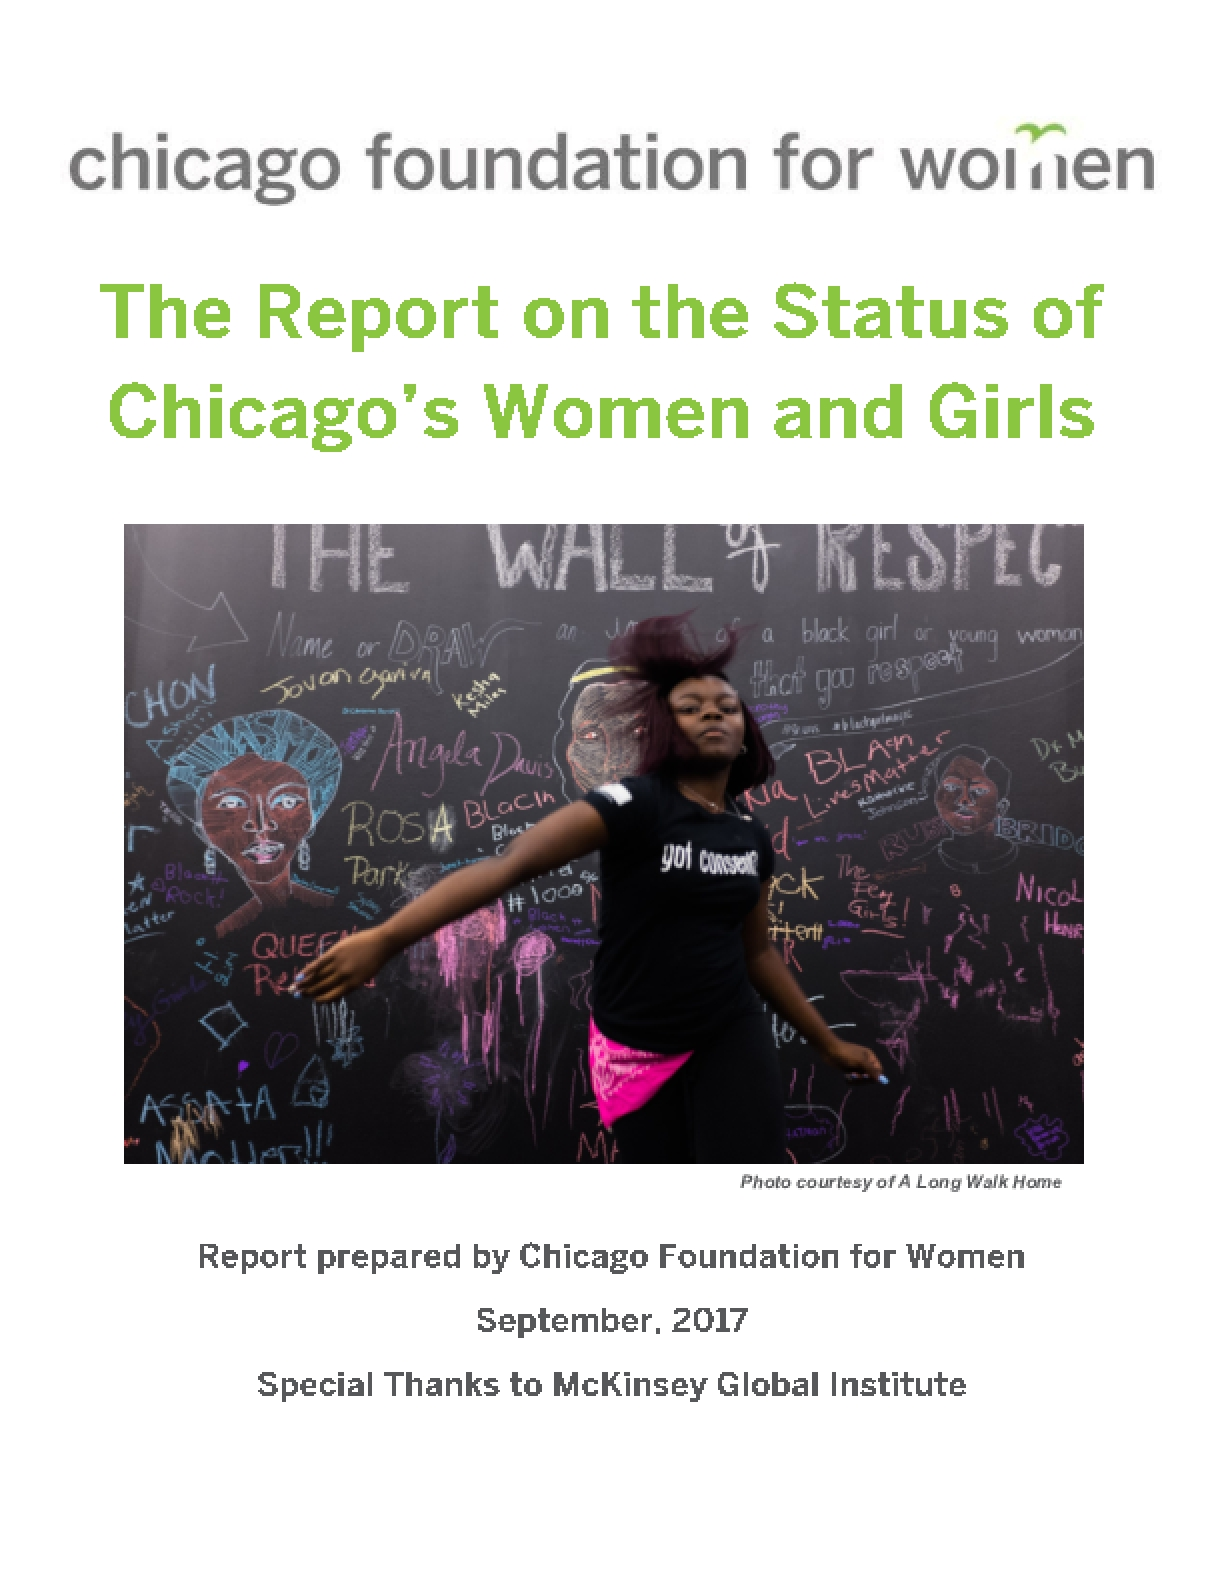 The Report on the Status of Chicago's Women and Girls